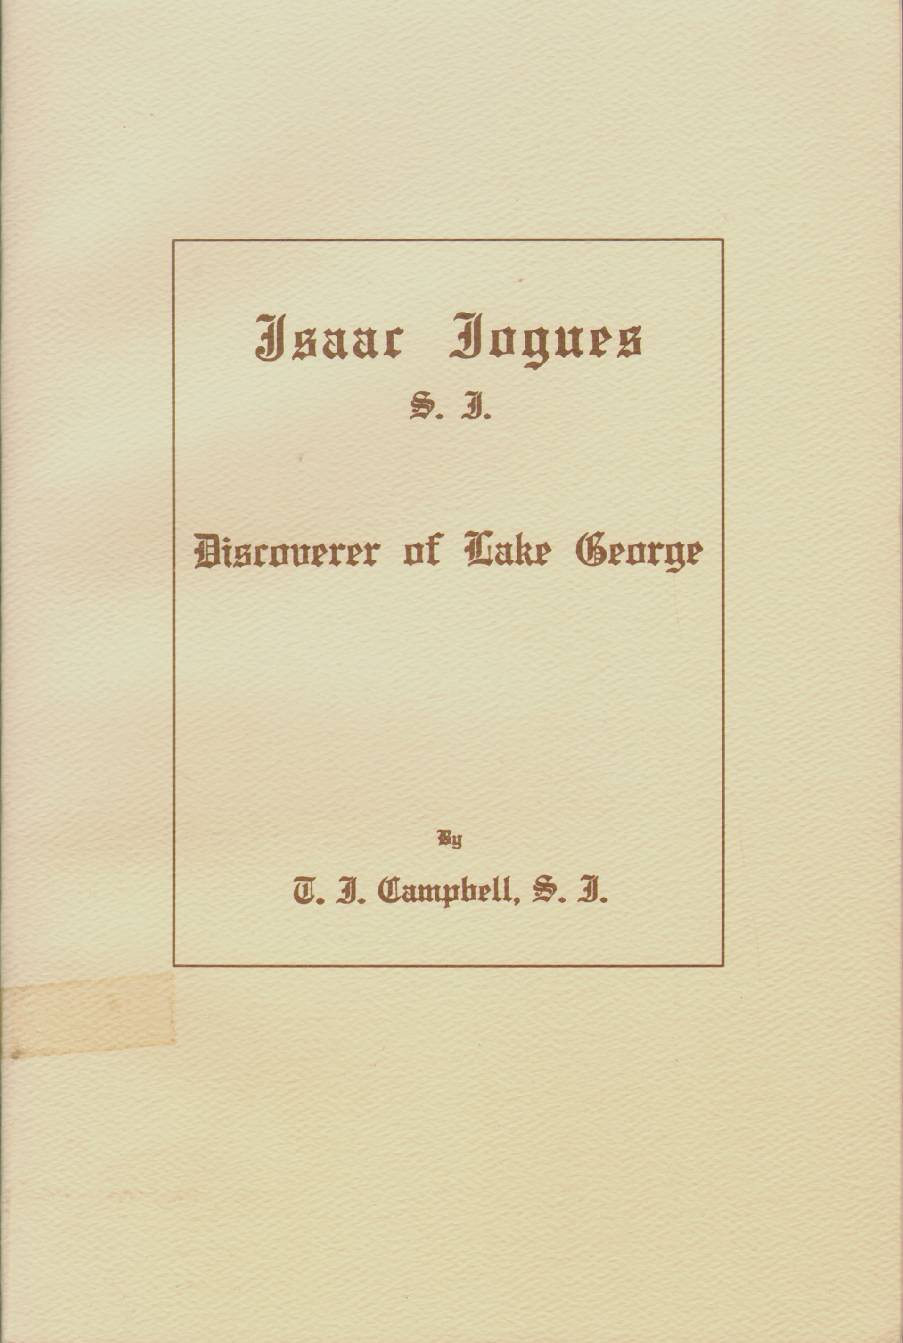 Image for ISAAC JOGUES, S.J. Discoverer of Lake George